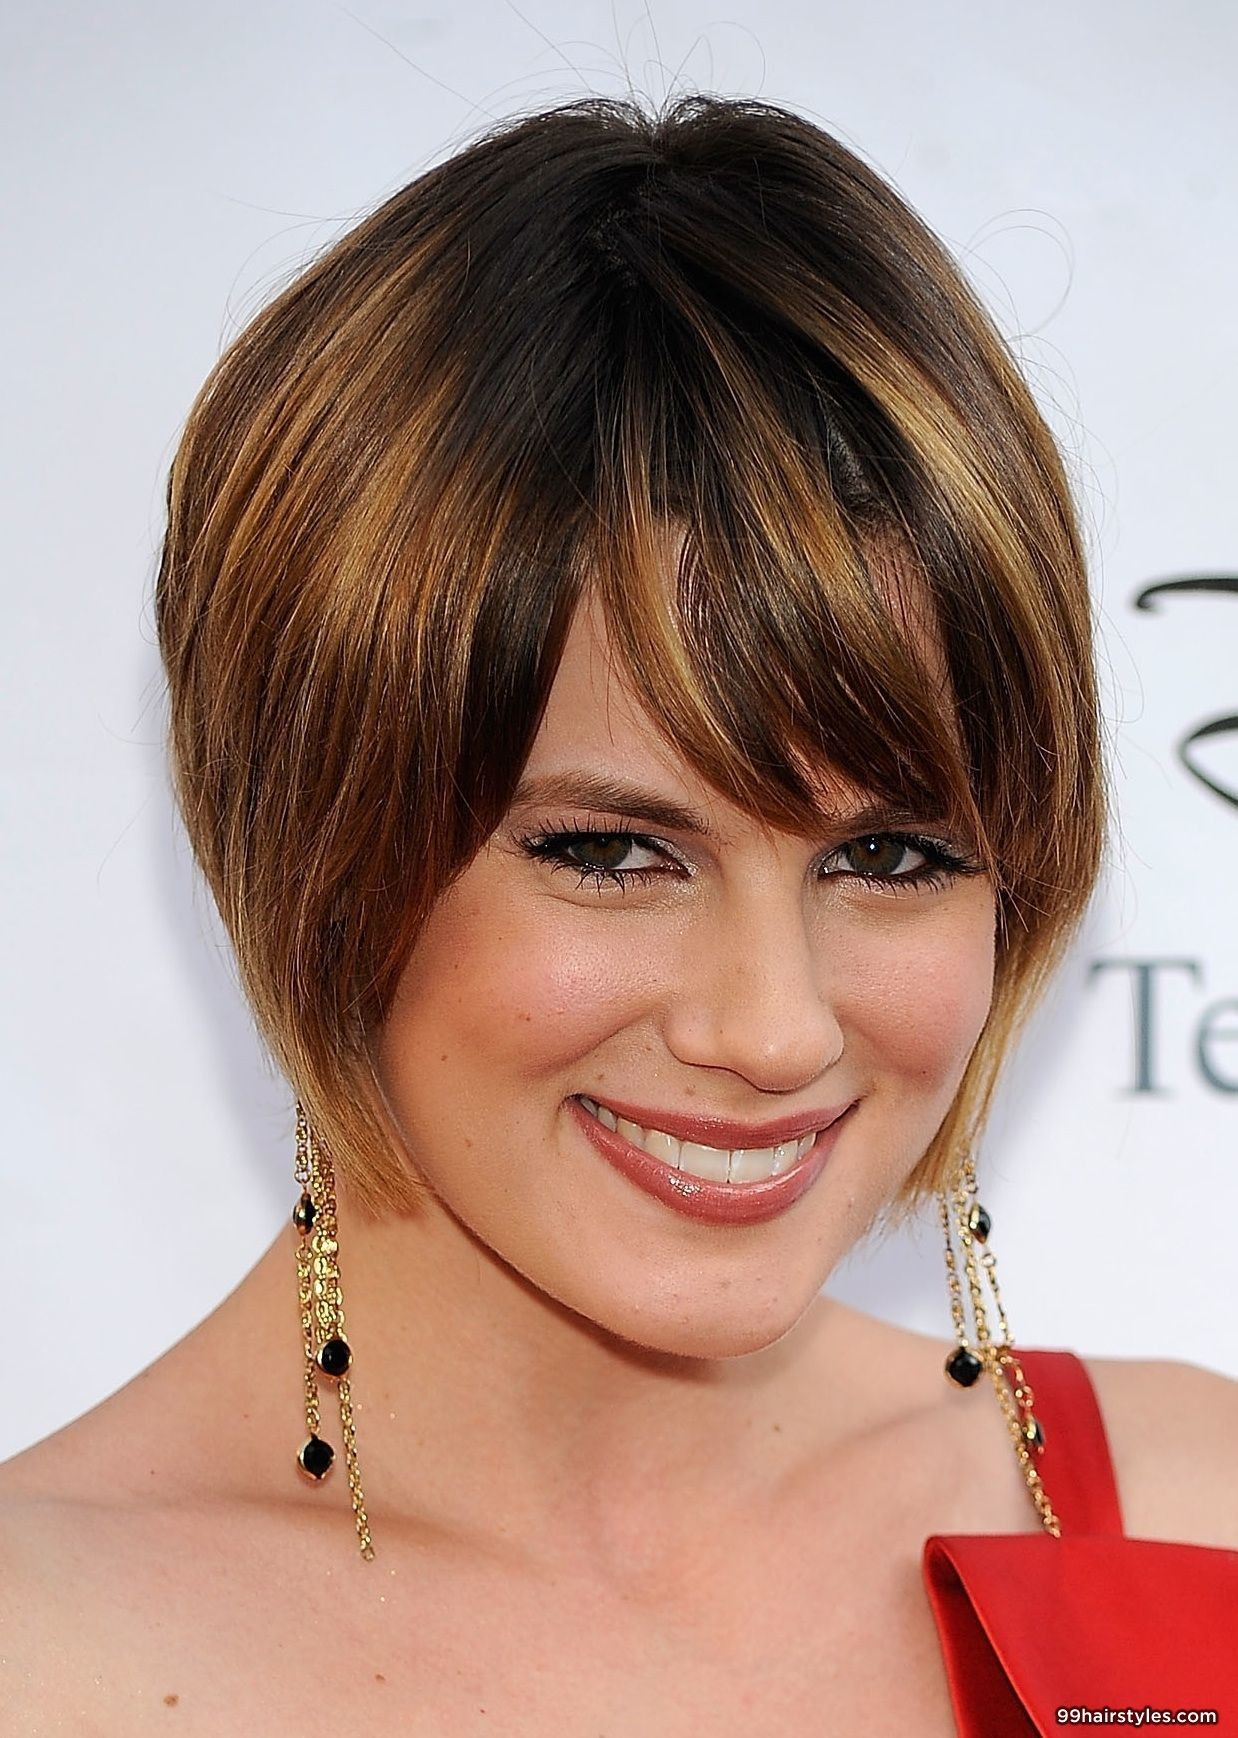 Short hairstyle for girls with thick hair hairstyle ideas